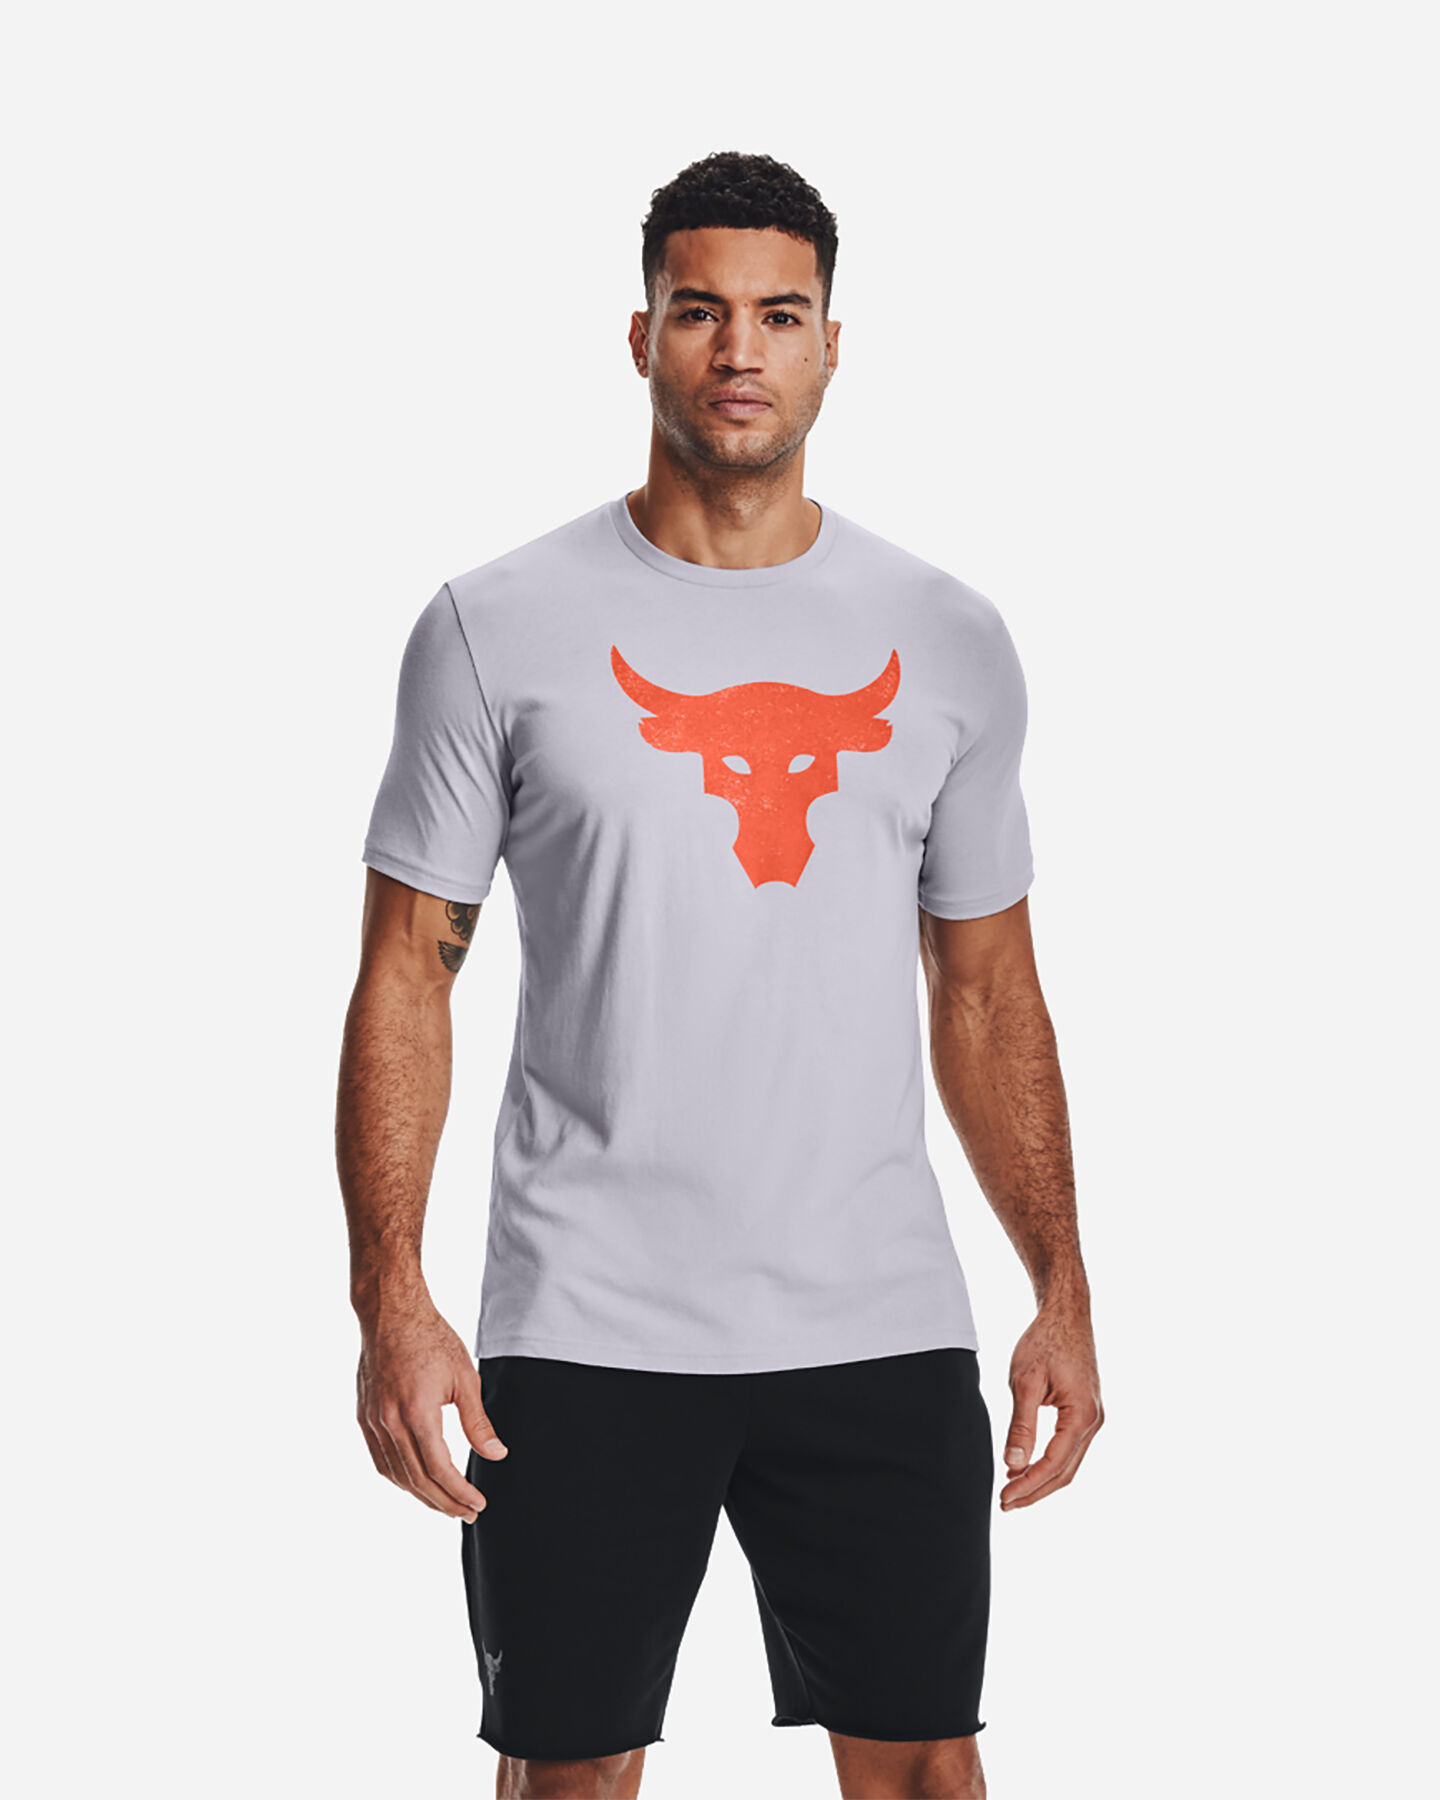 T-Shirt UNDER ARMOUR THE ROCK BULL LOGO M S5300568 scatto 2